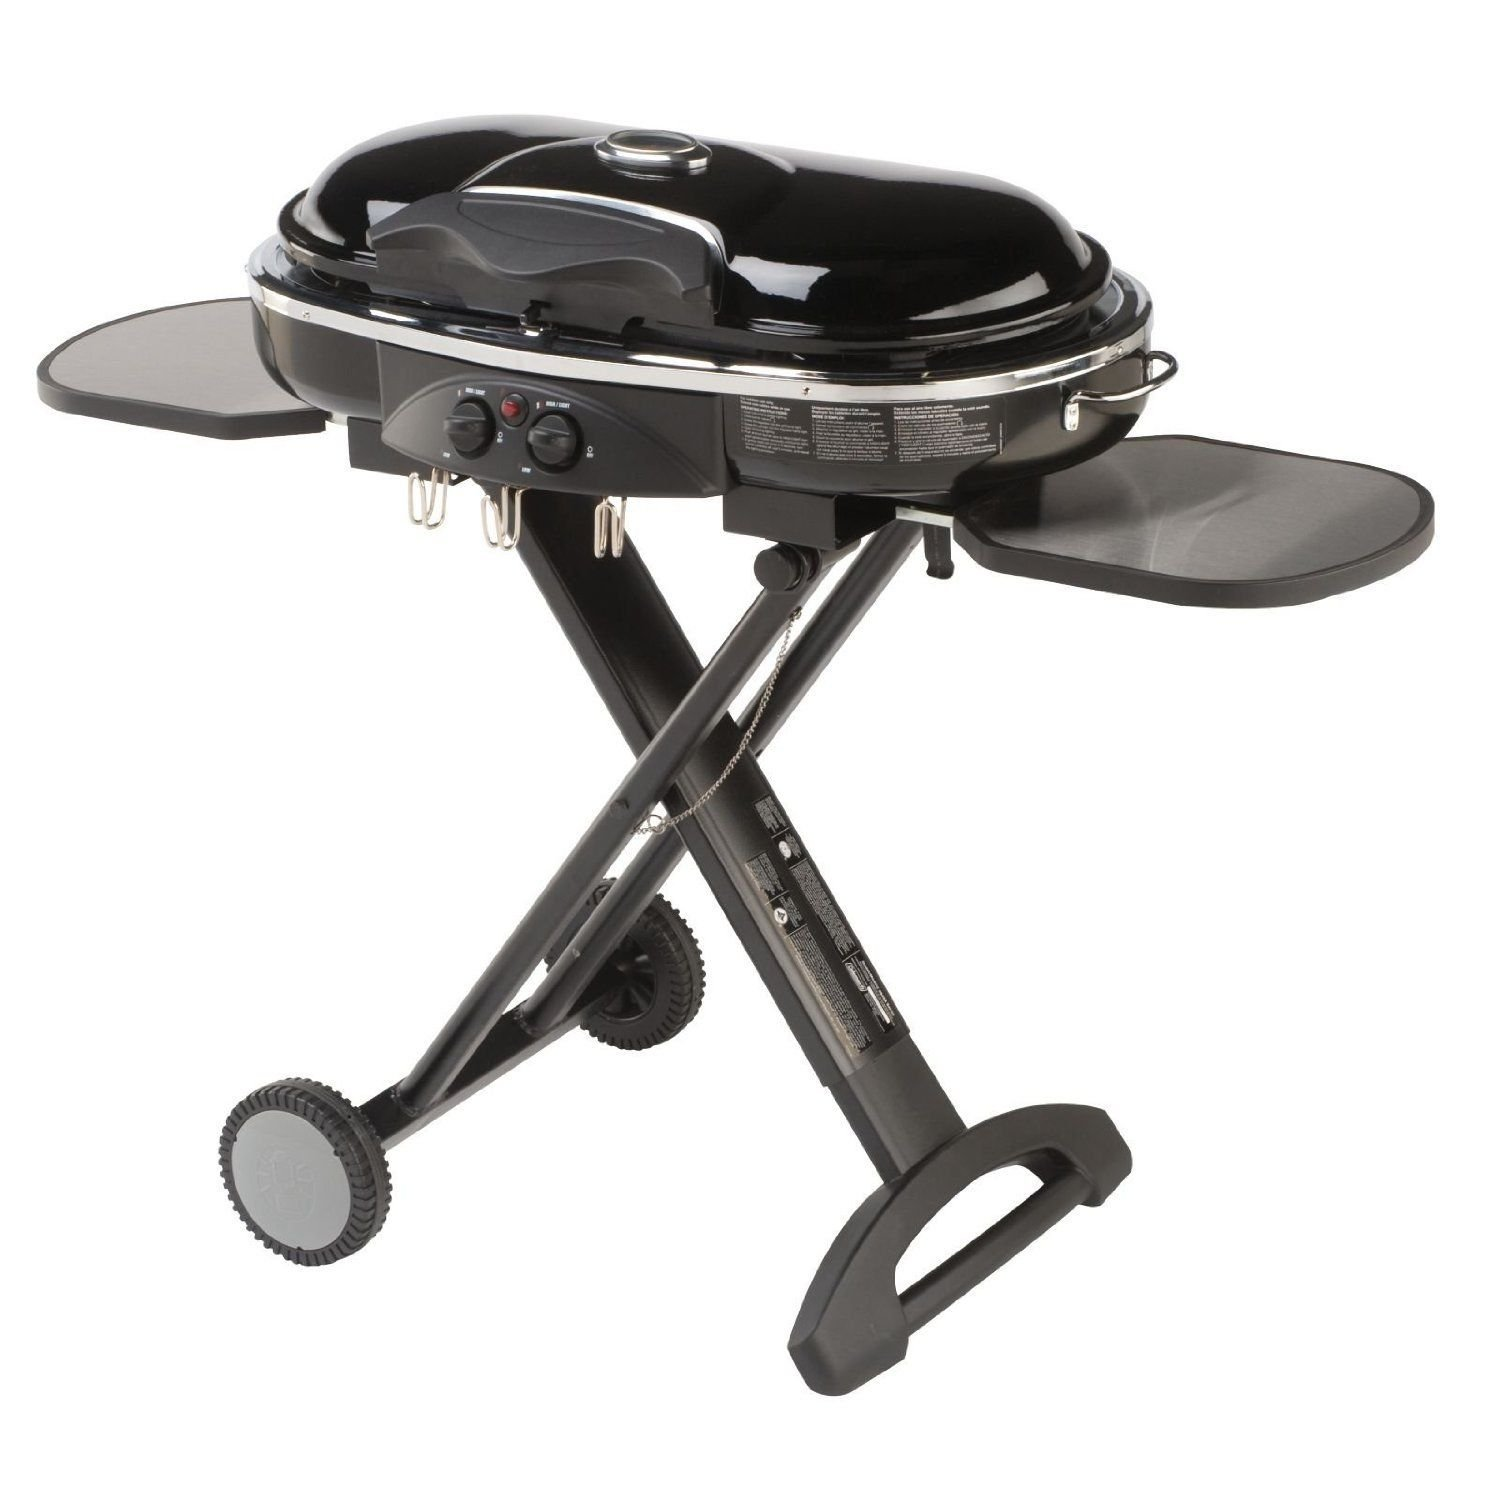 (Ship from USA) Coleman RoadTrip LXX GRILL, Perfect Flow Technology Collapsible Stand BBQ GRILL /ITEM NO#8Y-IFW81854252173